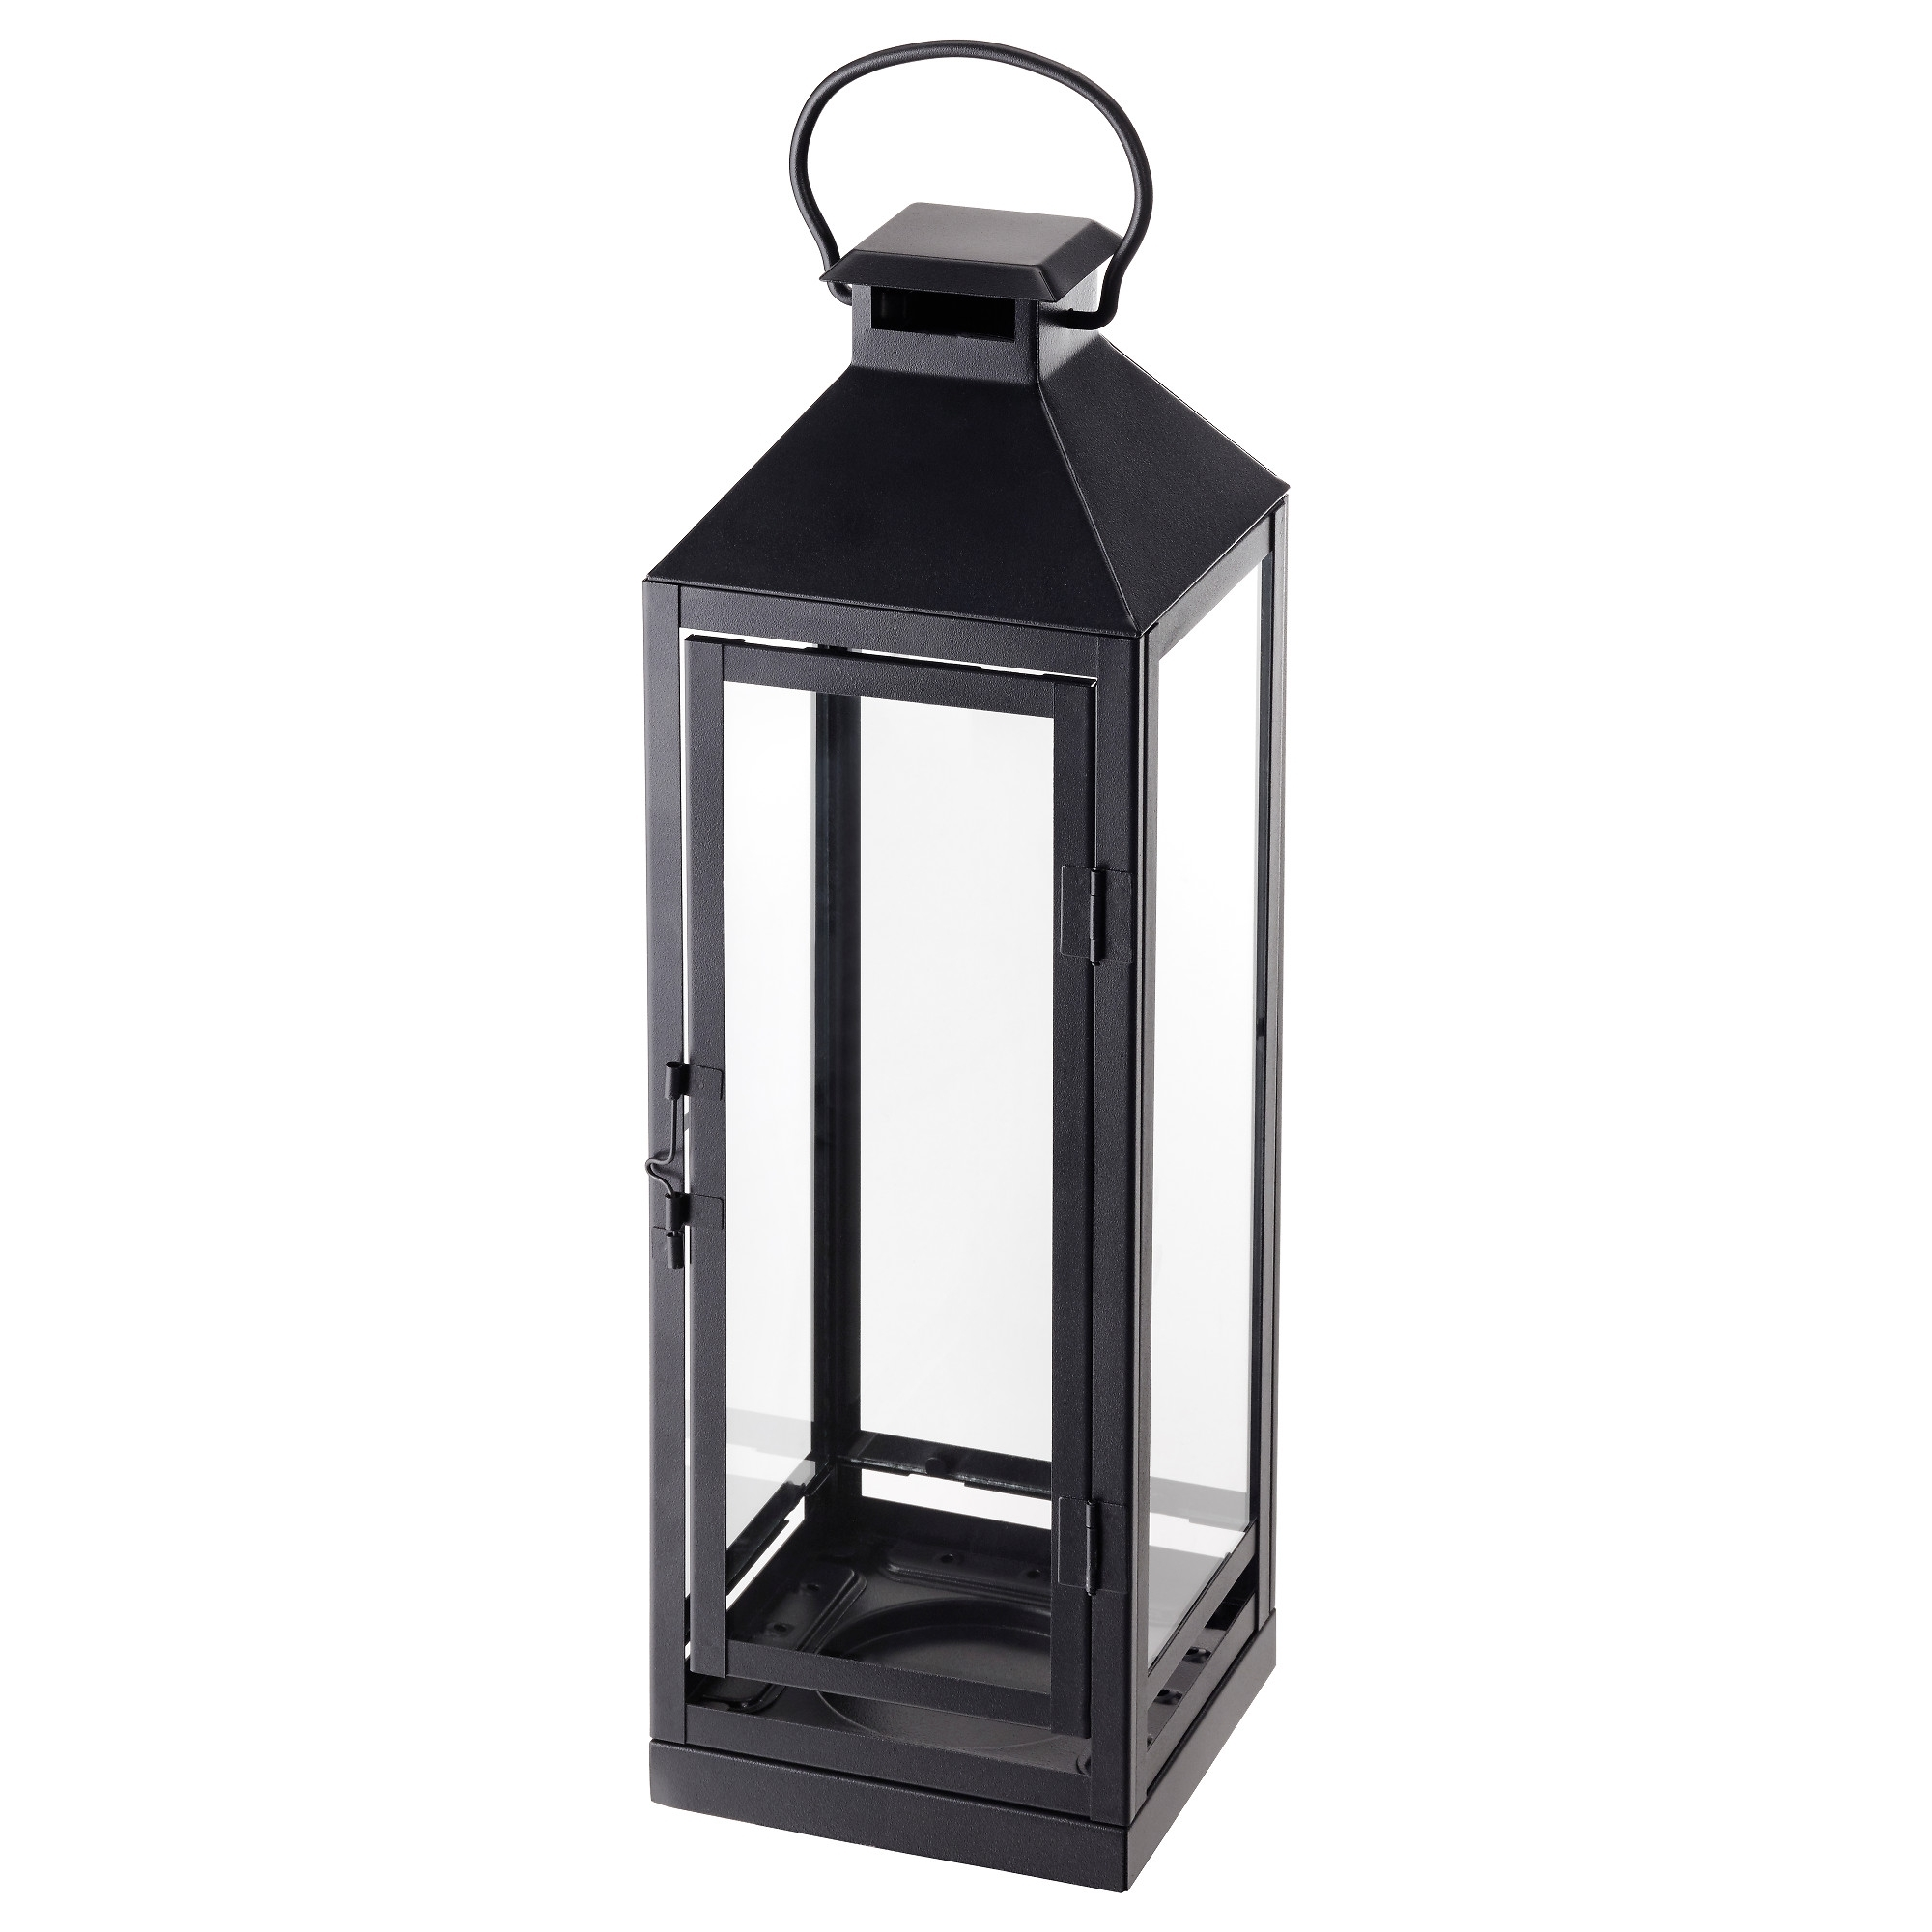 Ikea Lithuania - Shop For Furniture, Lighting, Home Accessories & More for Outdoor Metal Lanterns for Candles (Image 9 of 20)